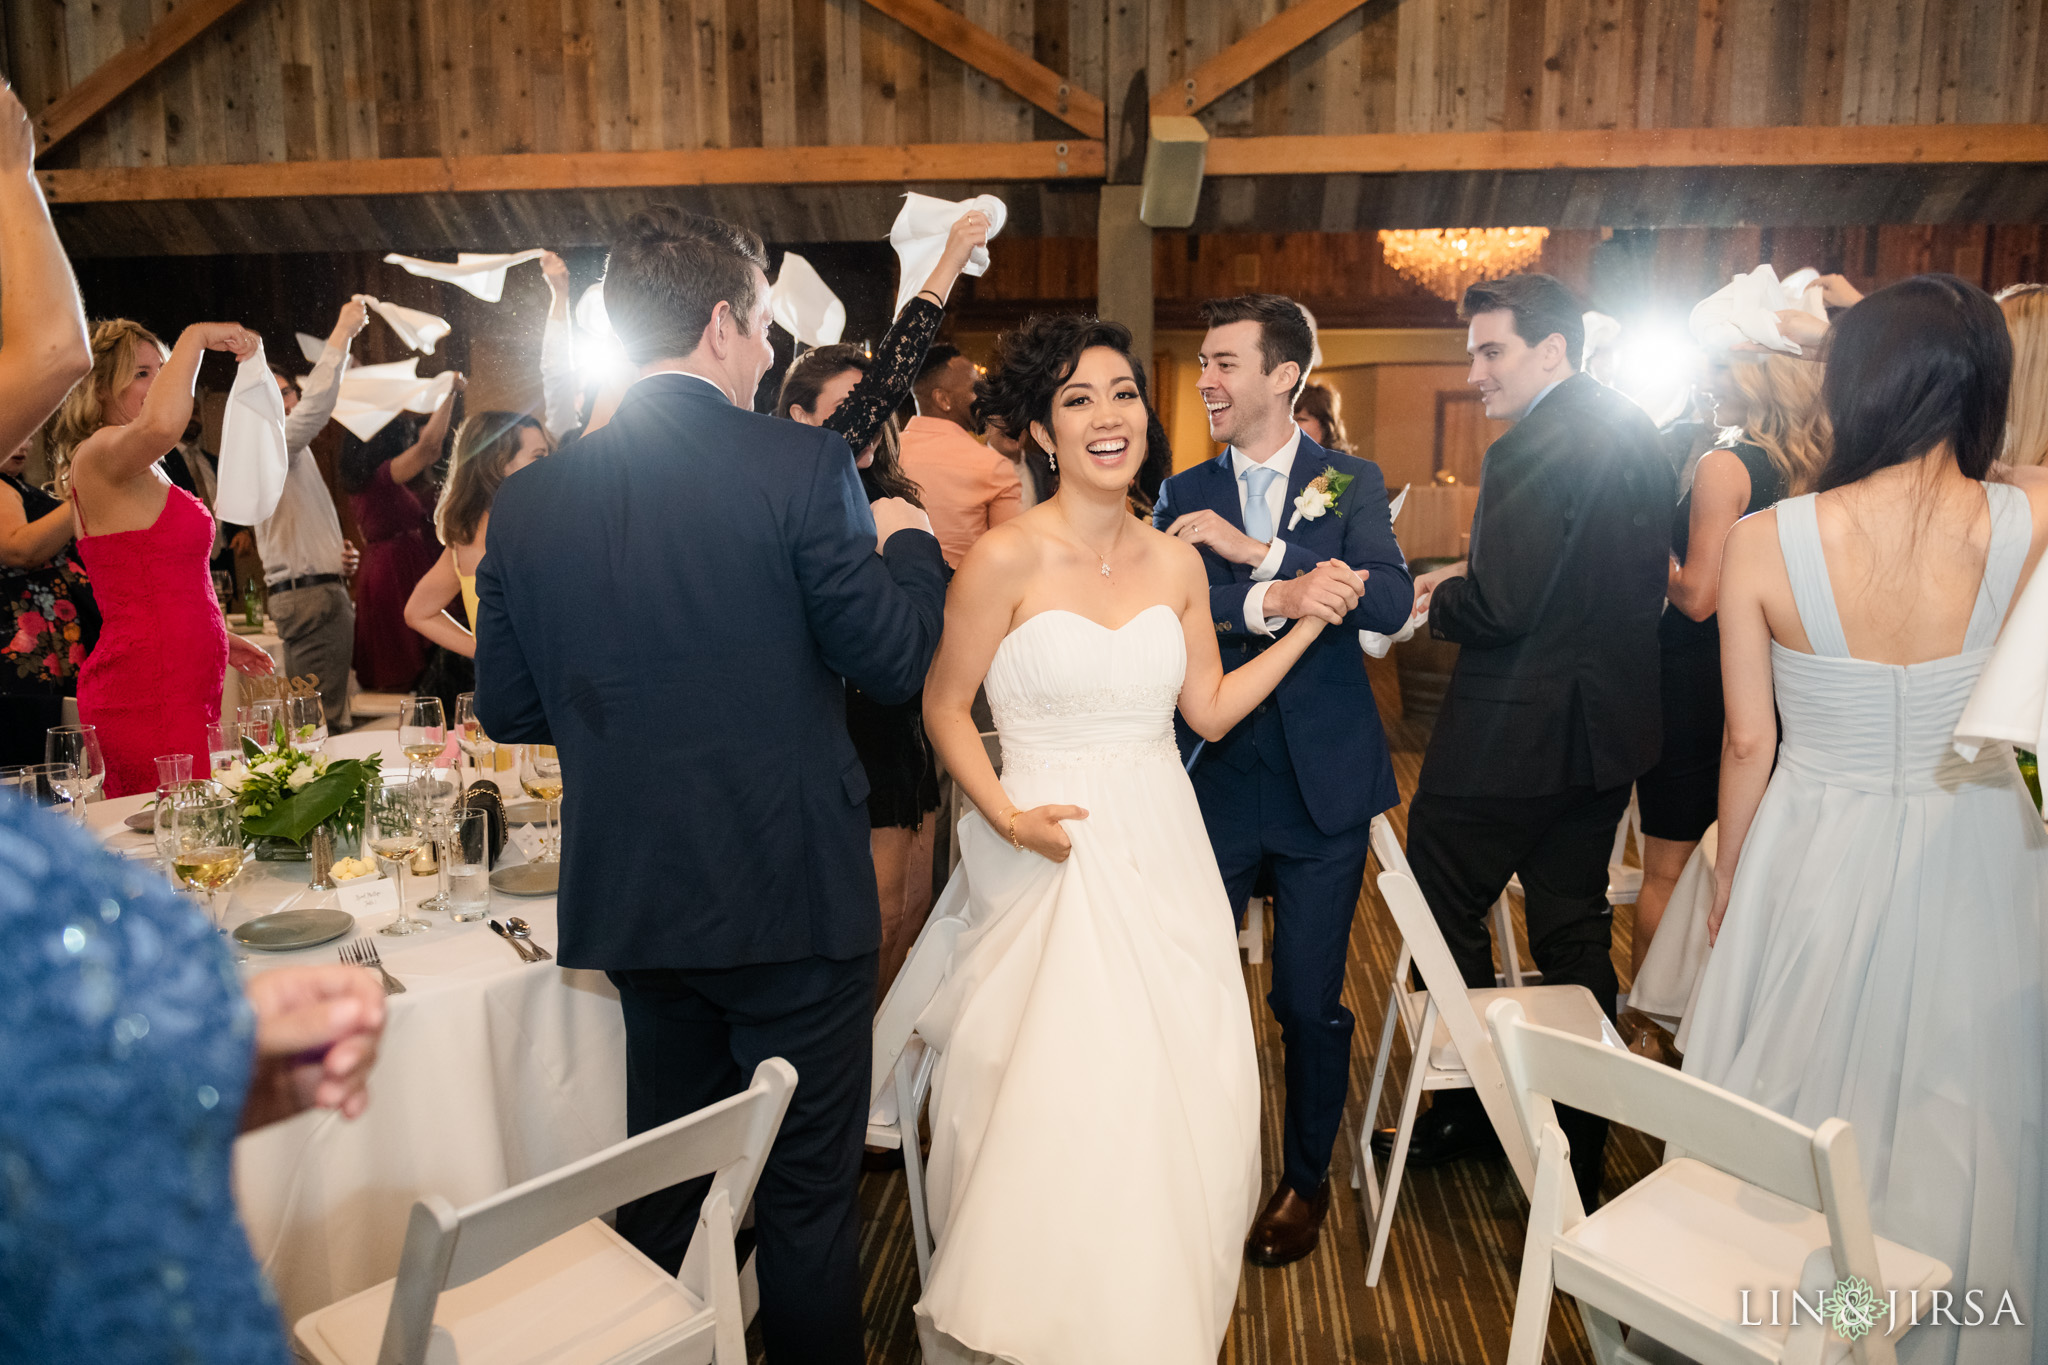 30 Calamigos Ranch Malibu California Wedding Photography